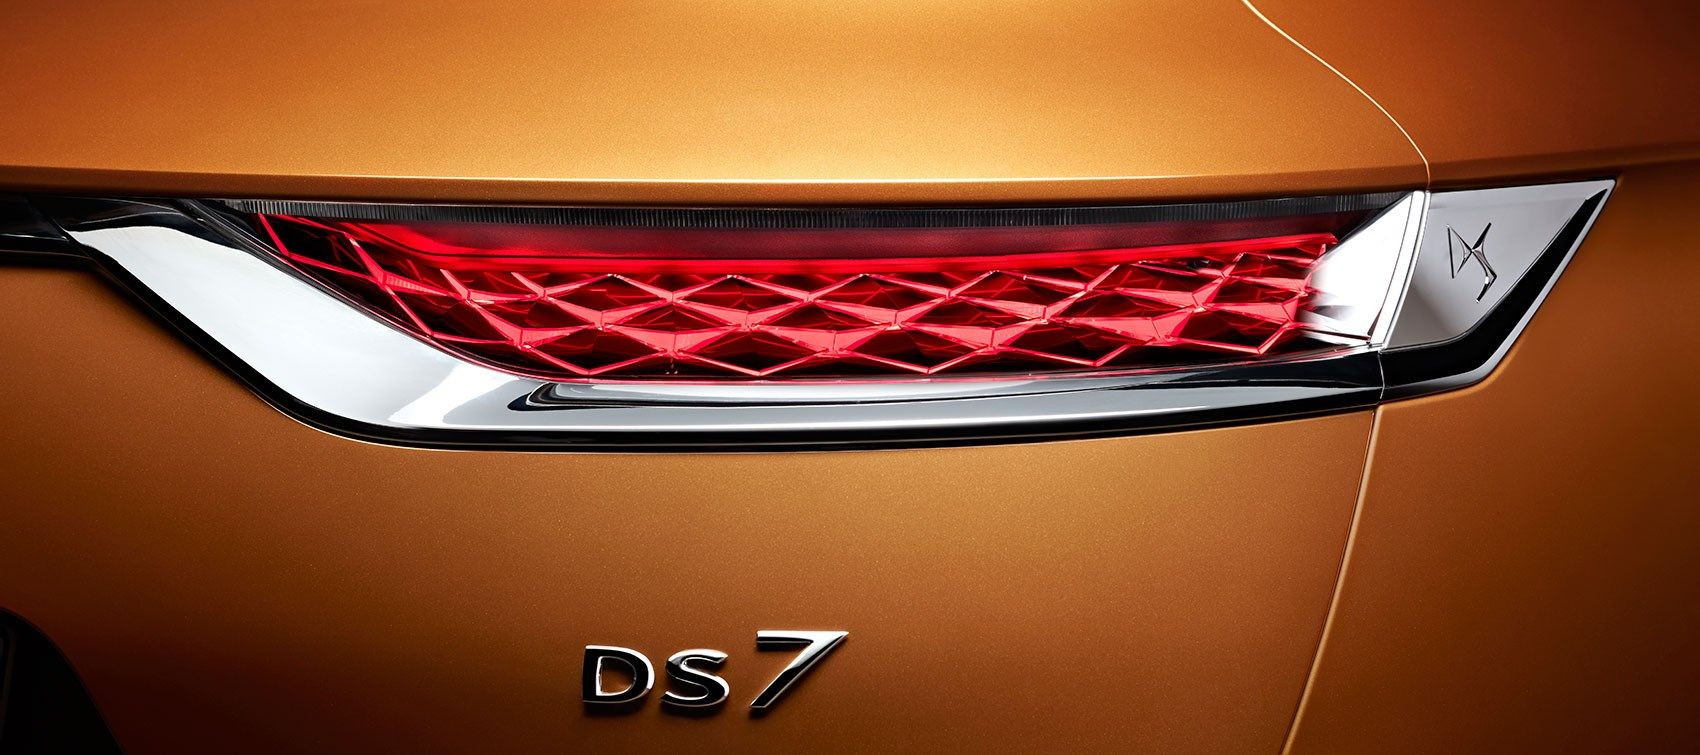 Citroen Ds 7 Crossback Taillight With Images Ds Automobiles Transportation Design Miniature Cars